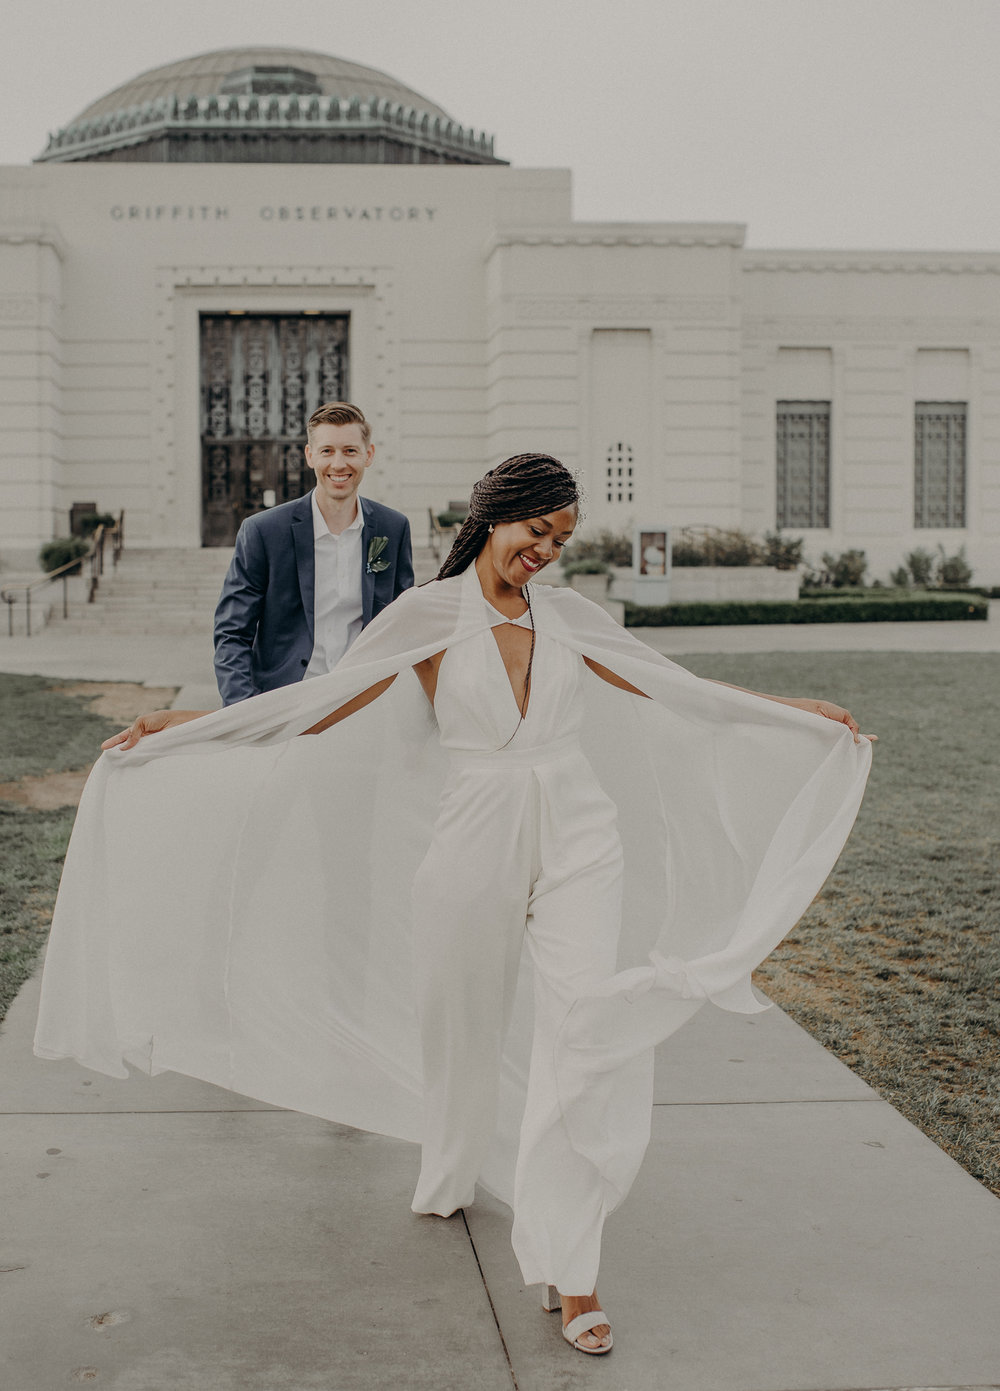 Los Angeles Wedding Photographer - Griffith Observatory Elopement - Long Beach wedding photo - IsaiahAndTaylor.com-089.jpg